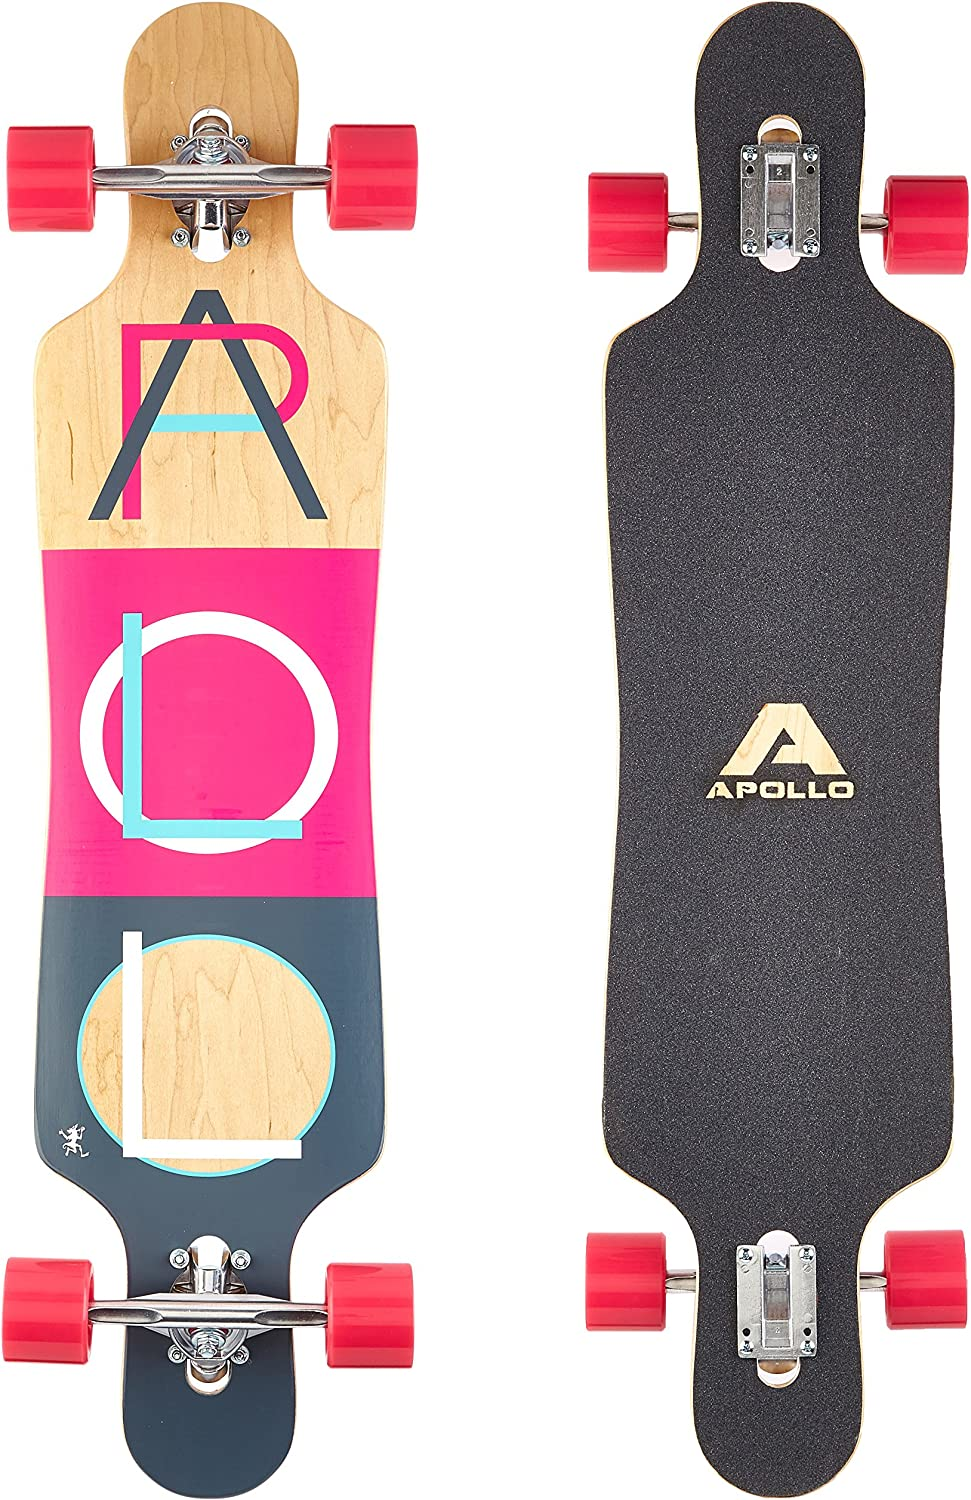 Apollo Longboard Fidji Flex 3